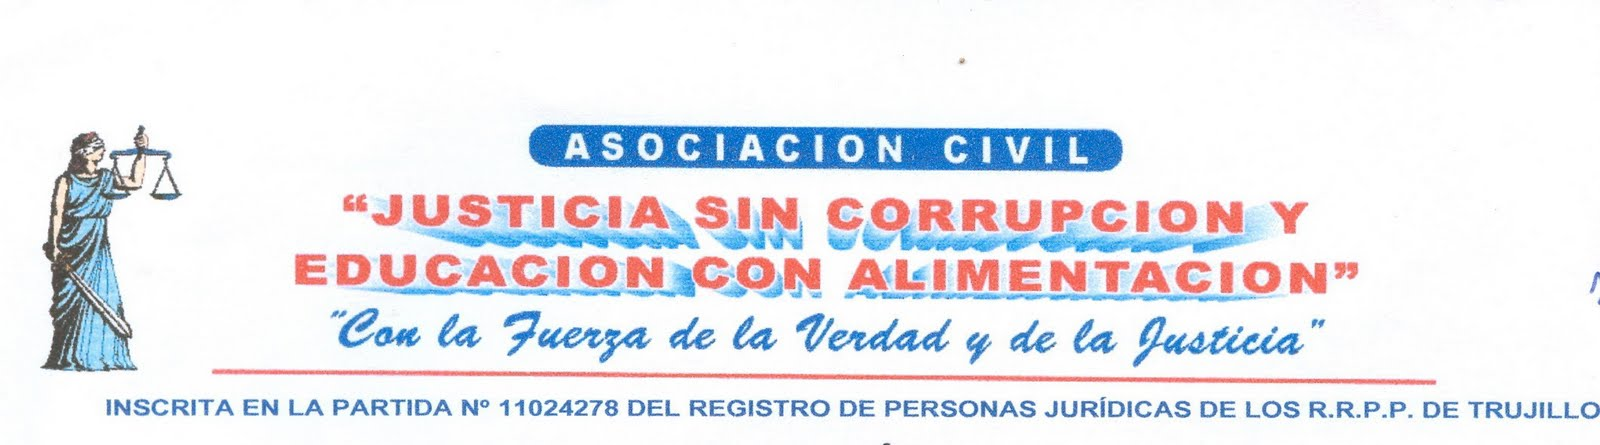 ASOCIACION JUSTICIAS SIN CORRUPCION Y EDUCACION ALIMENTACION